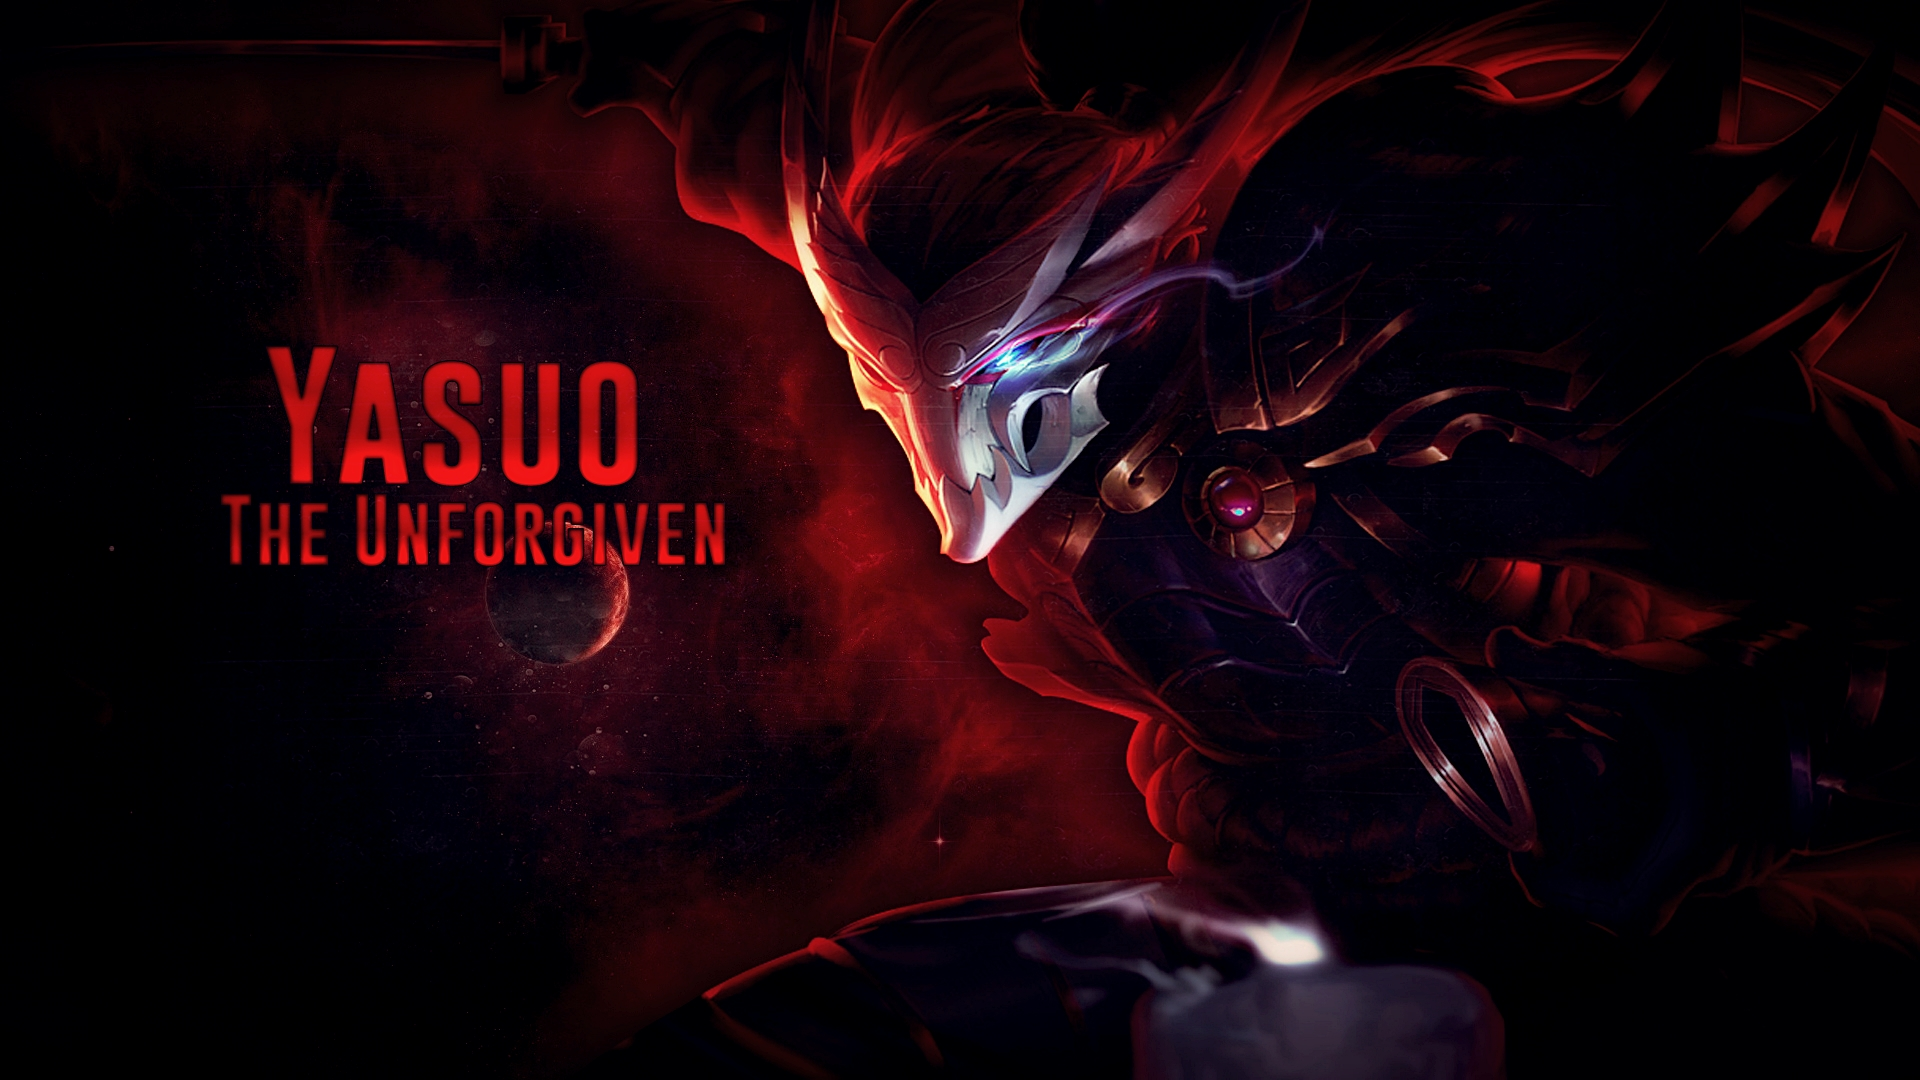 Yasuo Blood Moon 1600 900 Wallep 1920x1080 Download Hd Wallpaper Wallpapertip